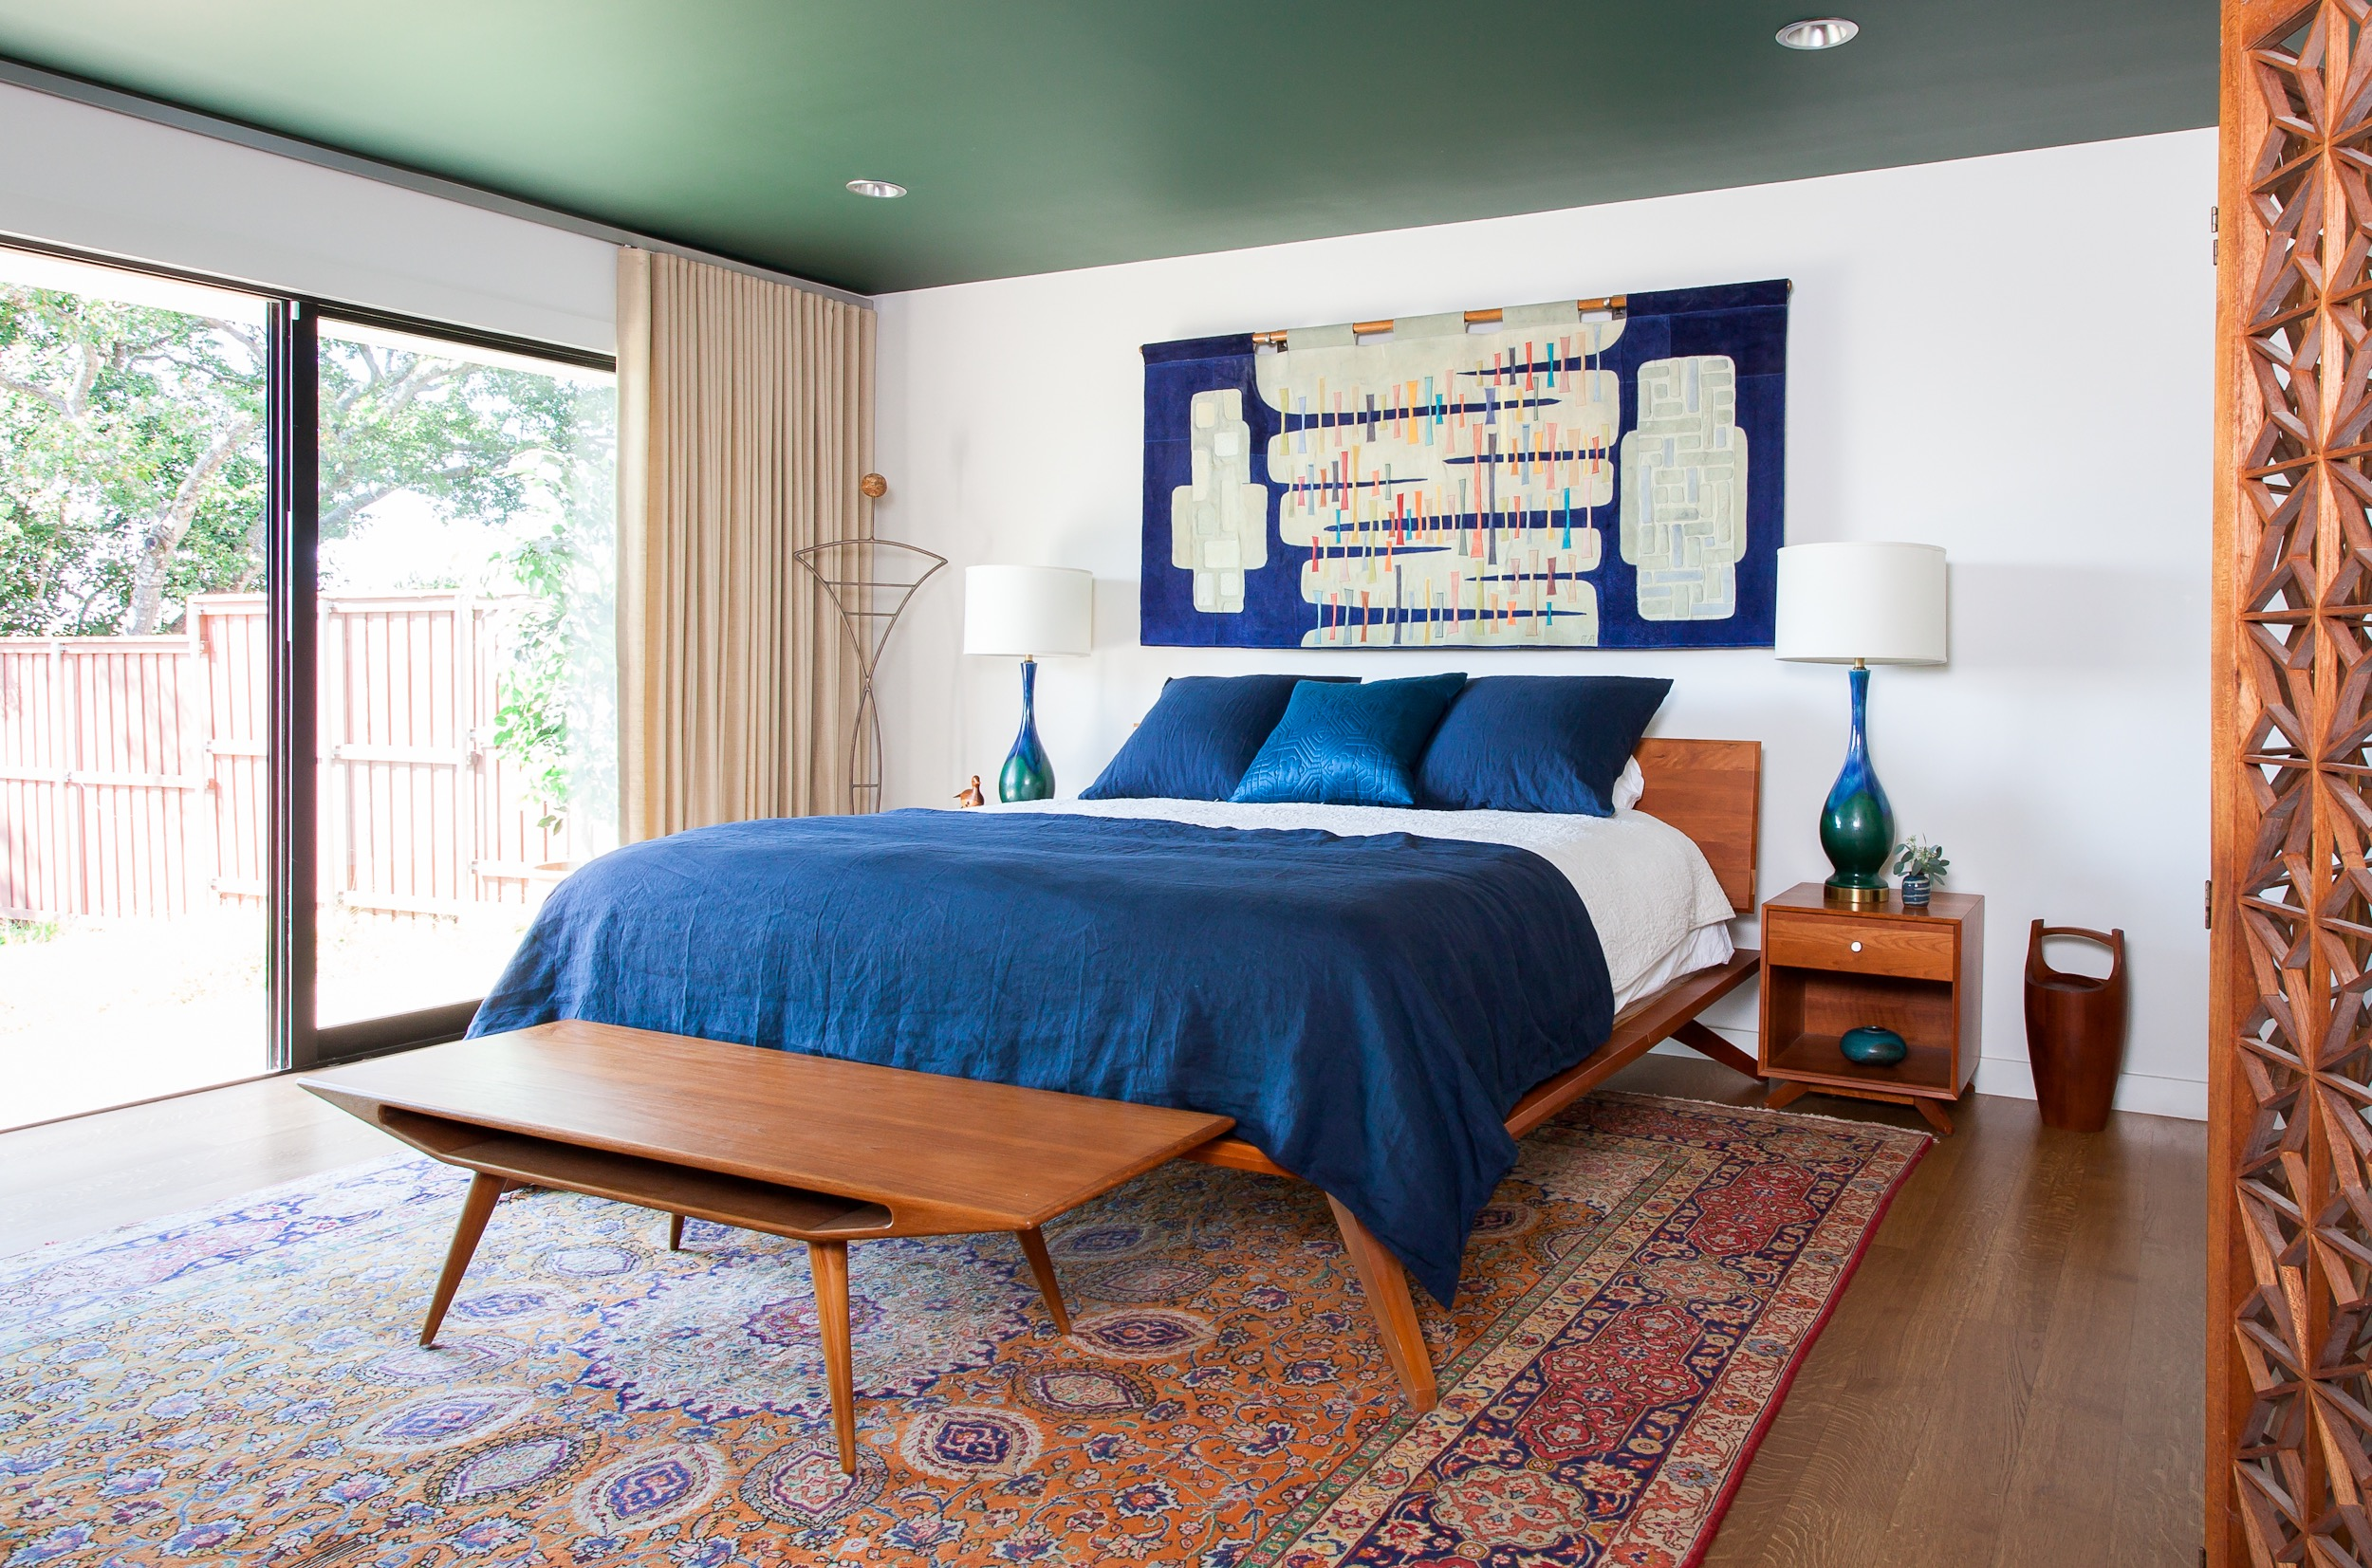 Midcentury Modern Master Bedroom With New Modern Furniture And Persian Rug (Image 9 of 15)